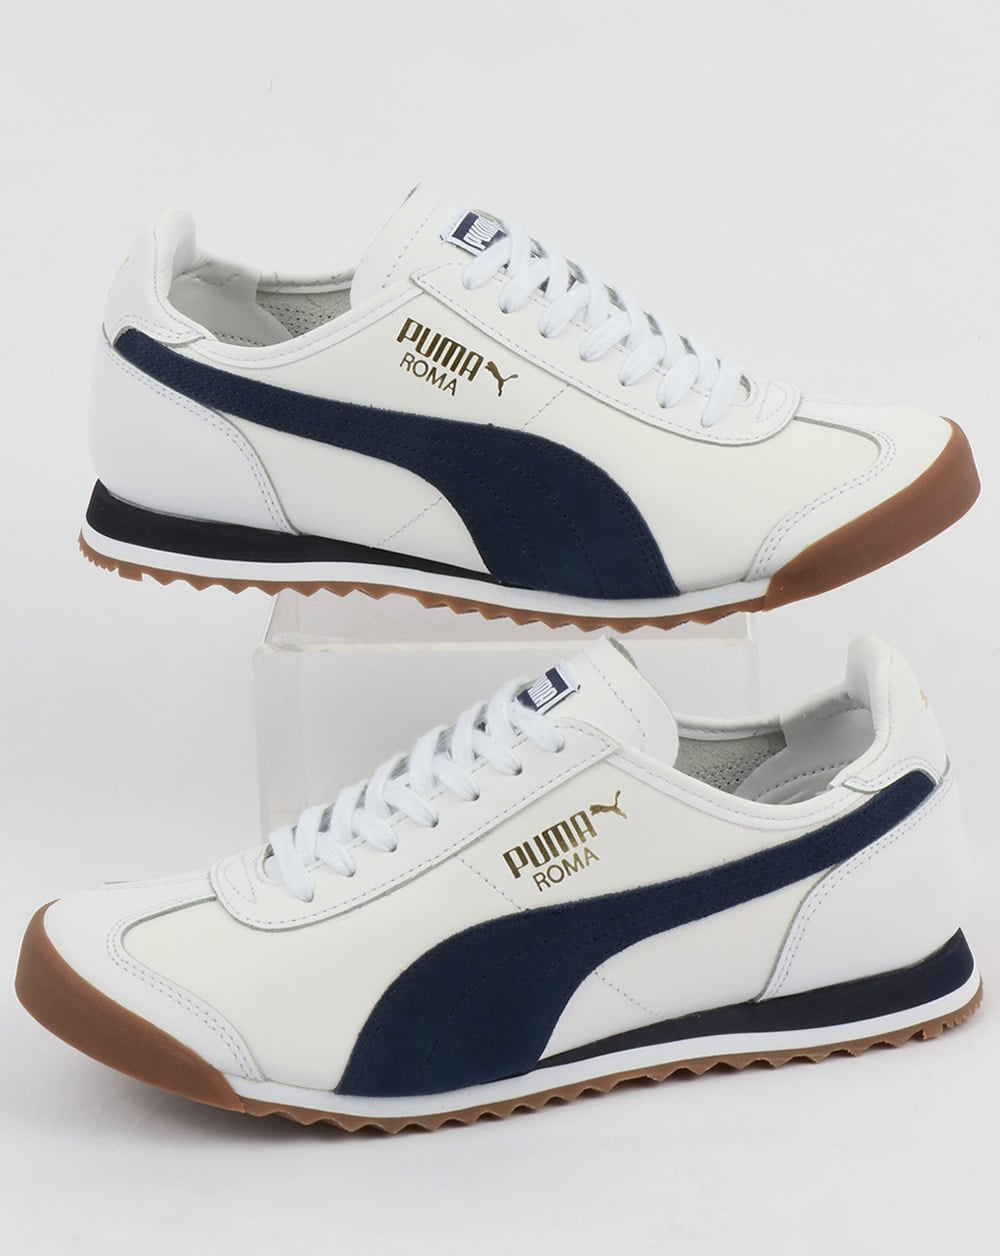 Puma Puma Roma Leather 80s Trainers White Navy 68eb11fb4